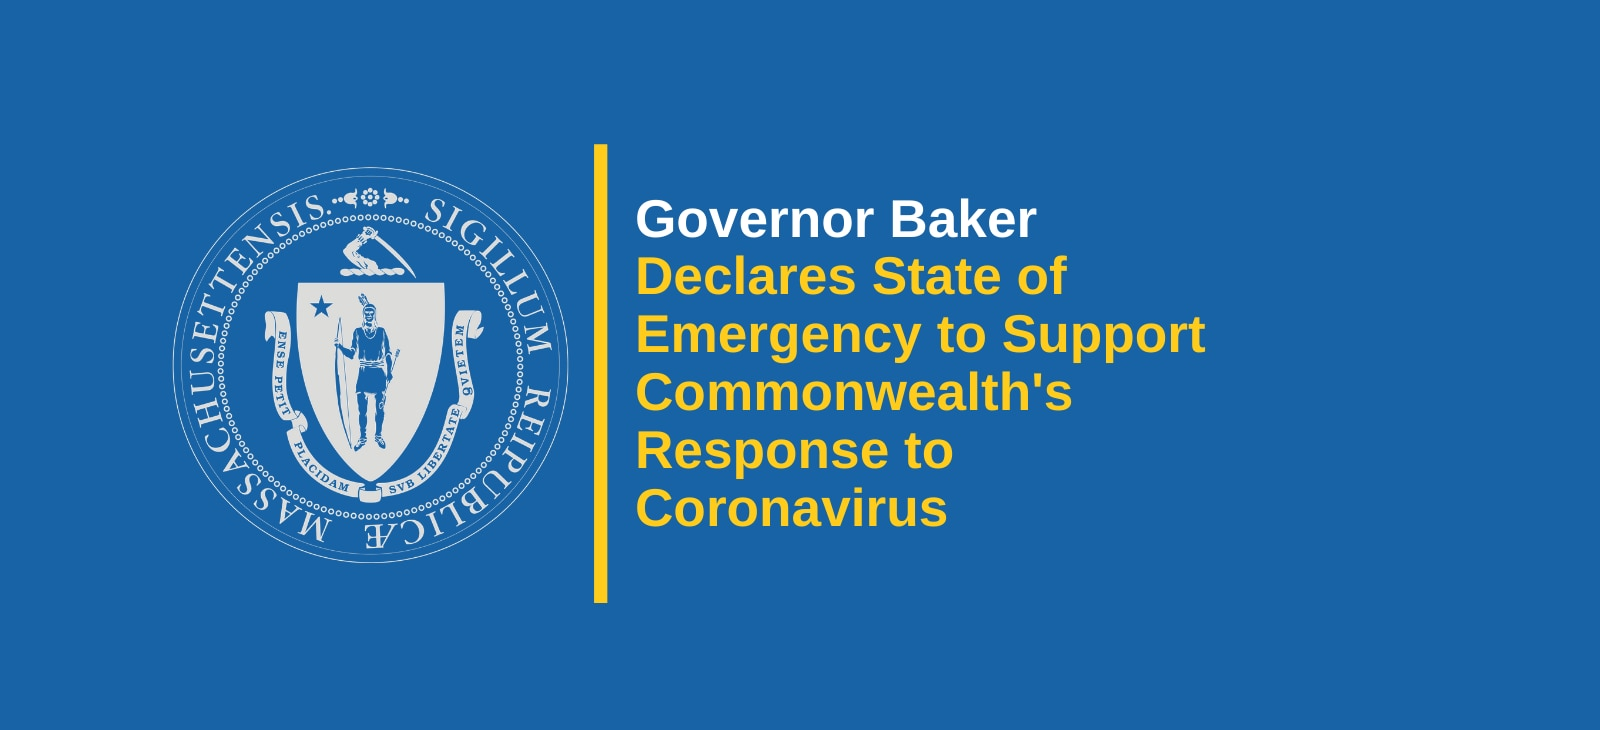 Governor Baker Declares State of Emergency to Support Commonwealth's Response to Coronavirus